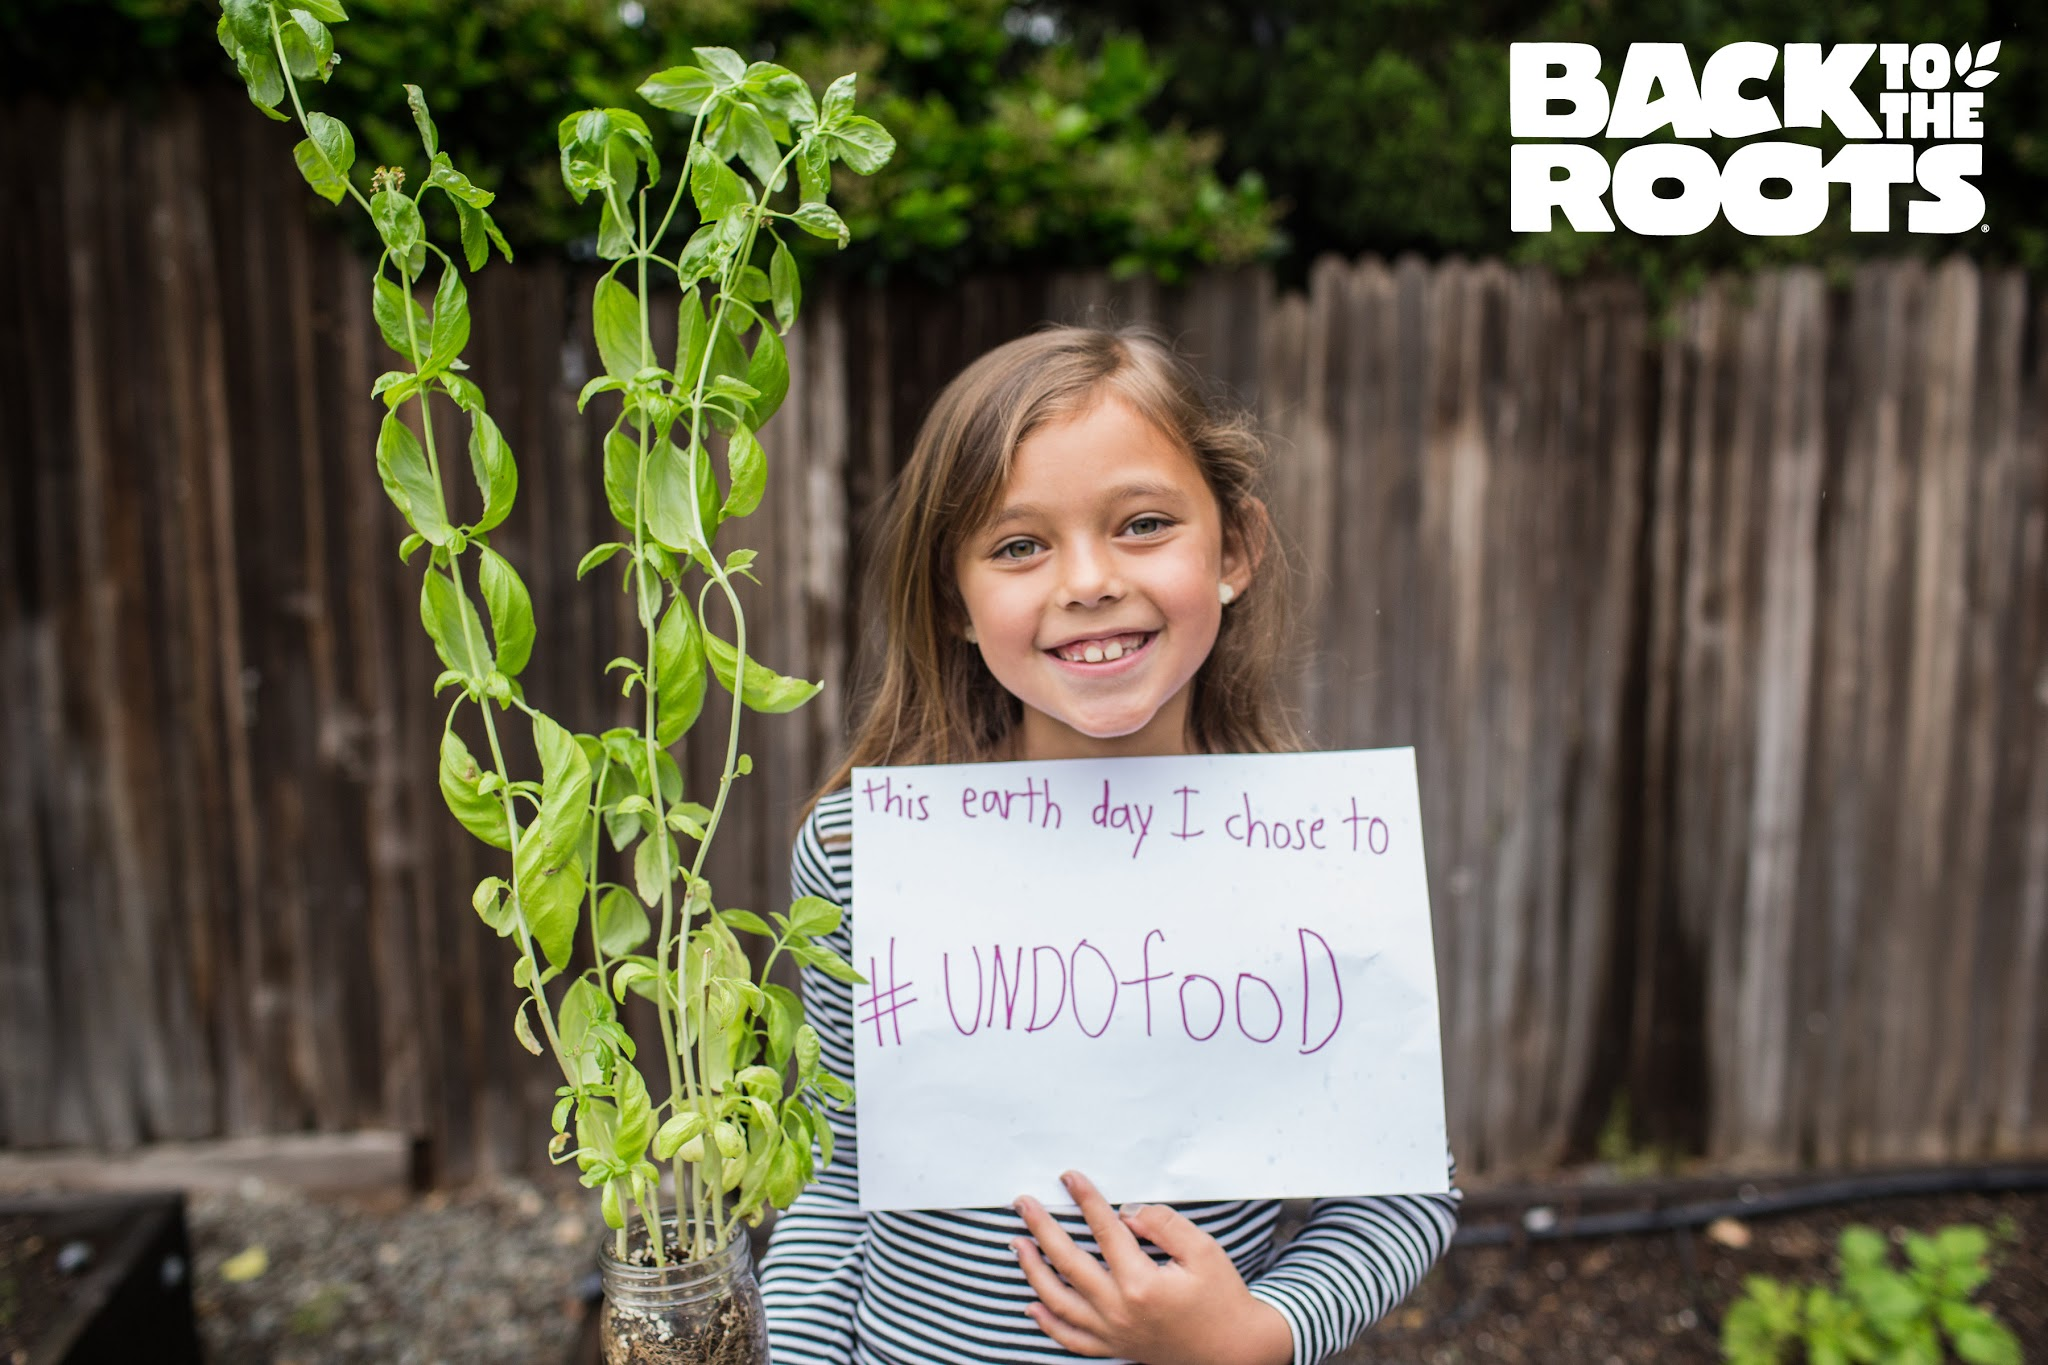 HHF & Back to the Roots #UndoFood on Earth Day!